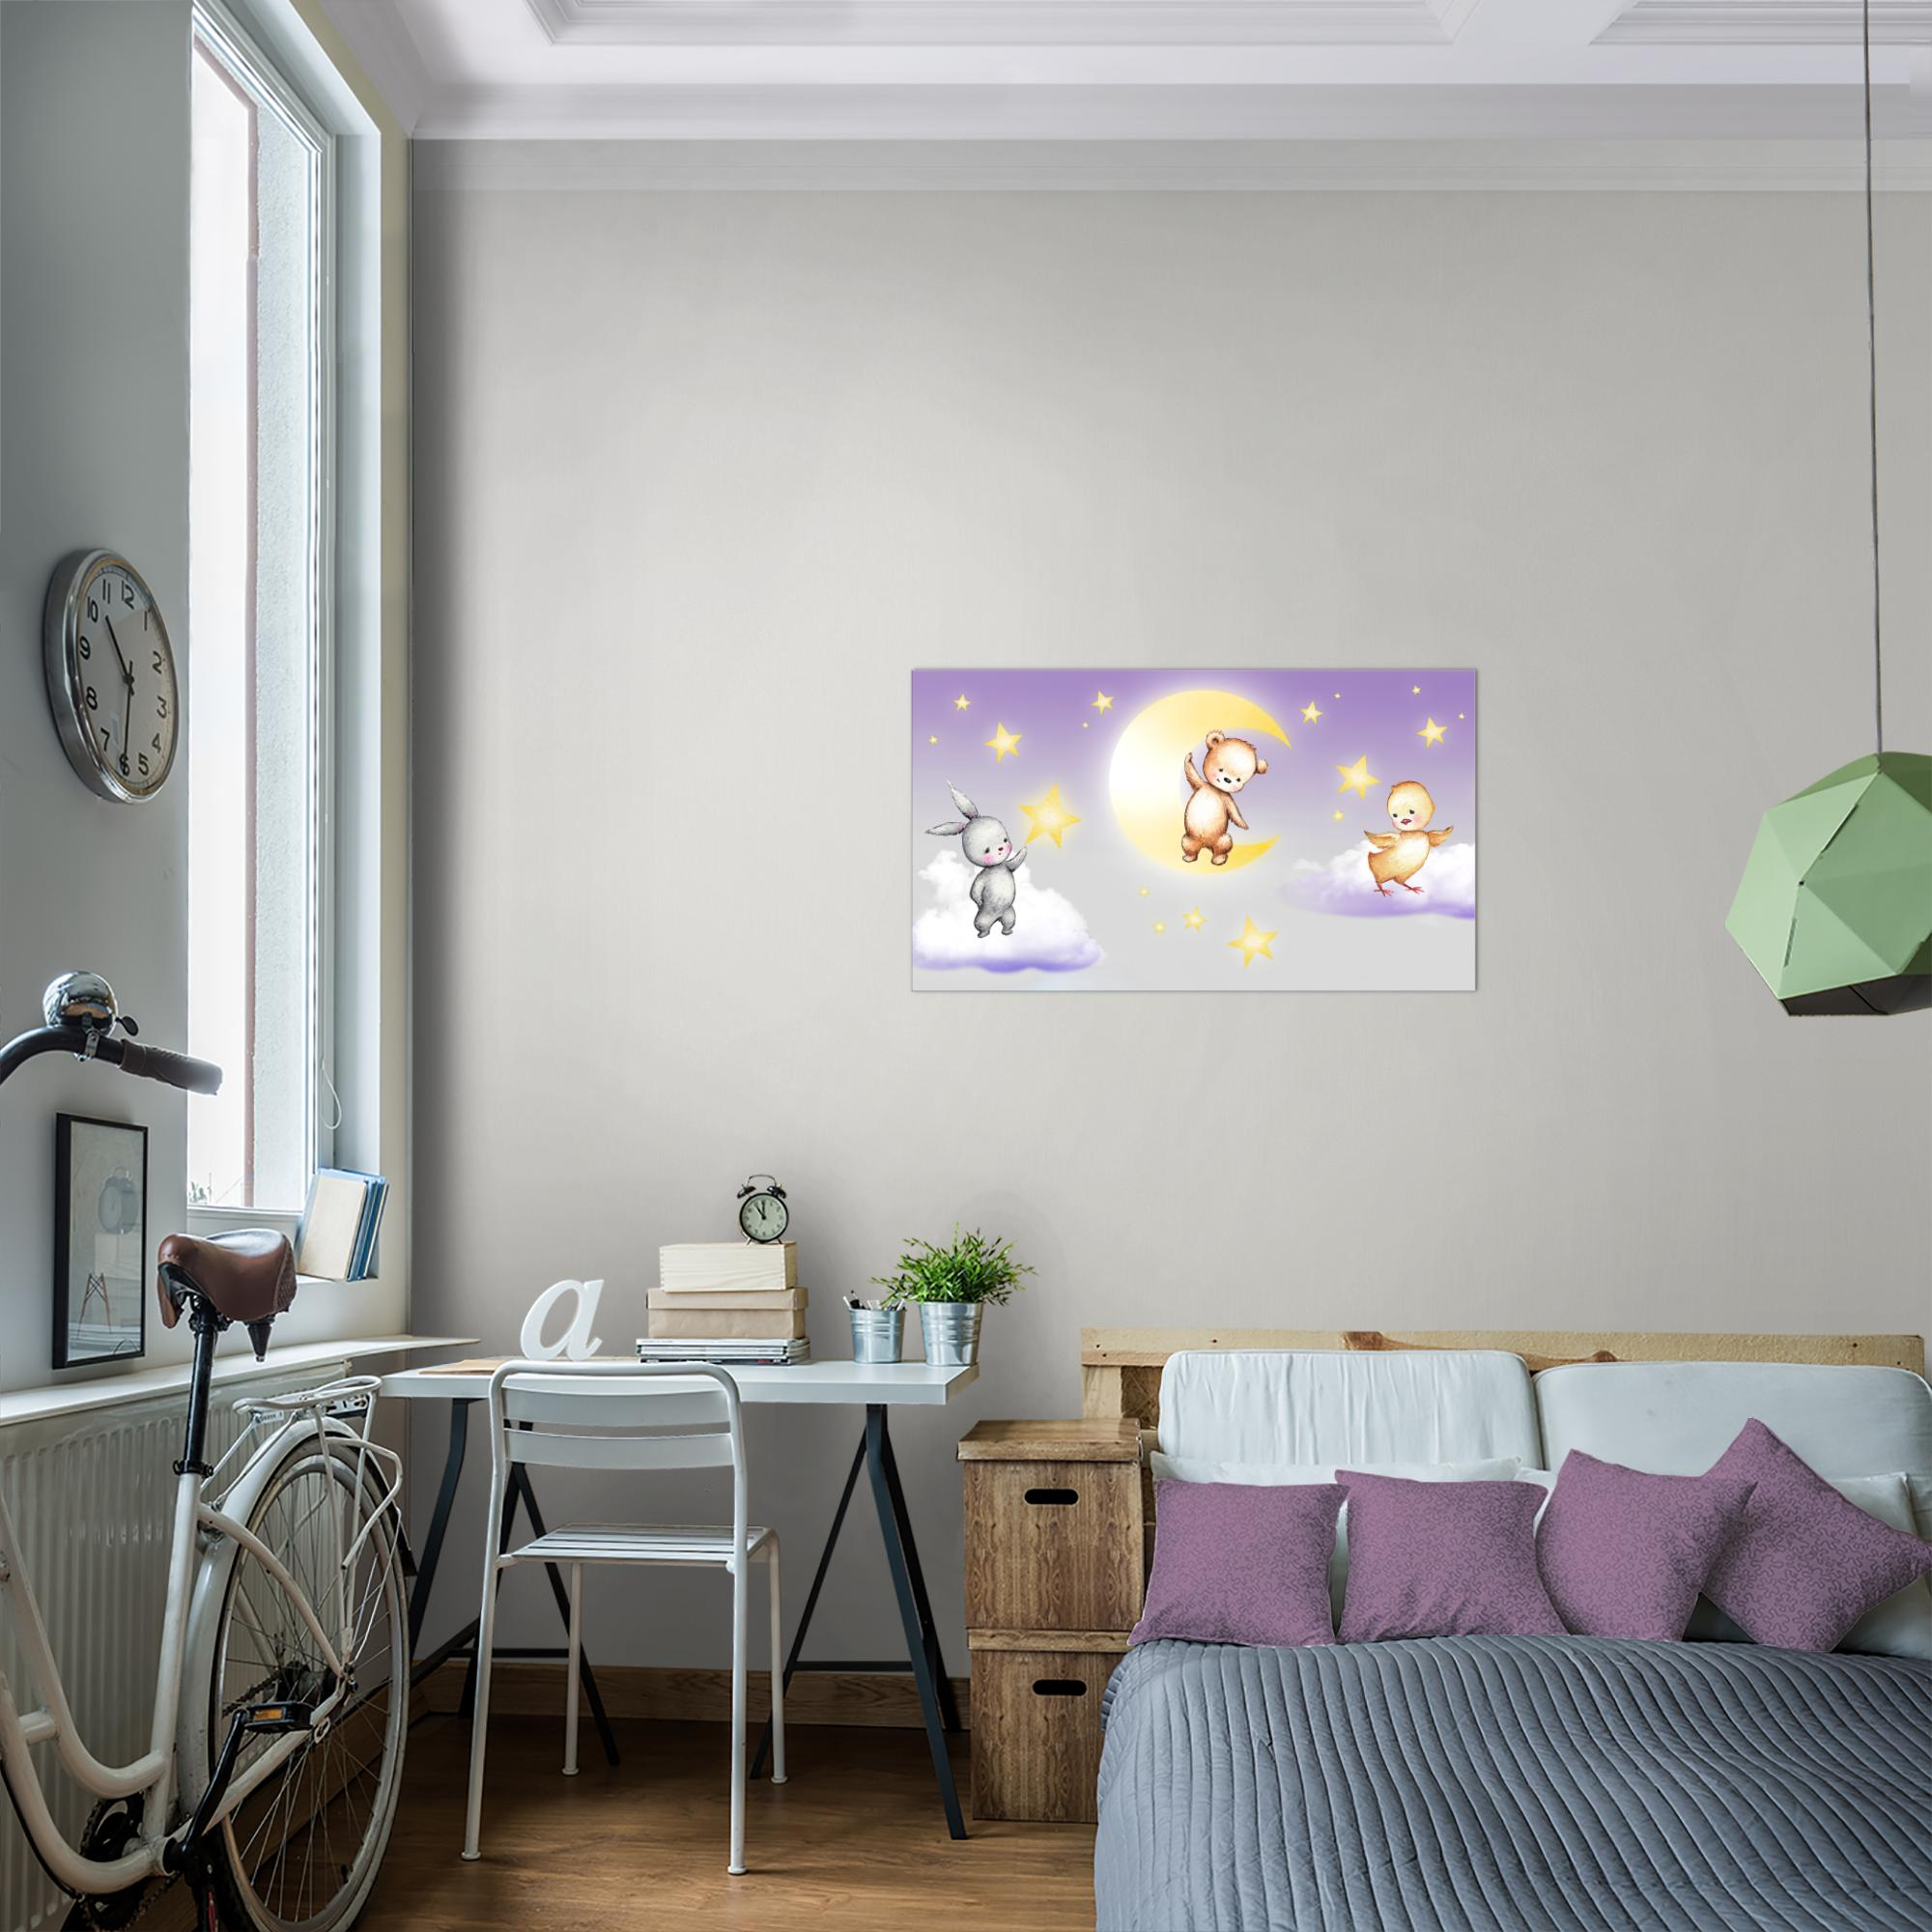 kinderzimmer tiere bild kunstdruck auf vlies leinwand xxl dekoration 017714p. Black Bedroom Furniture Sets. Home Design Ideas